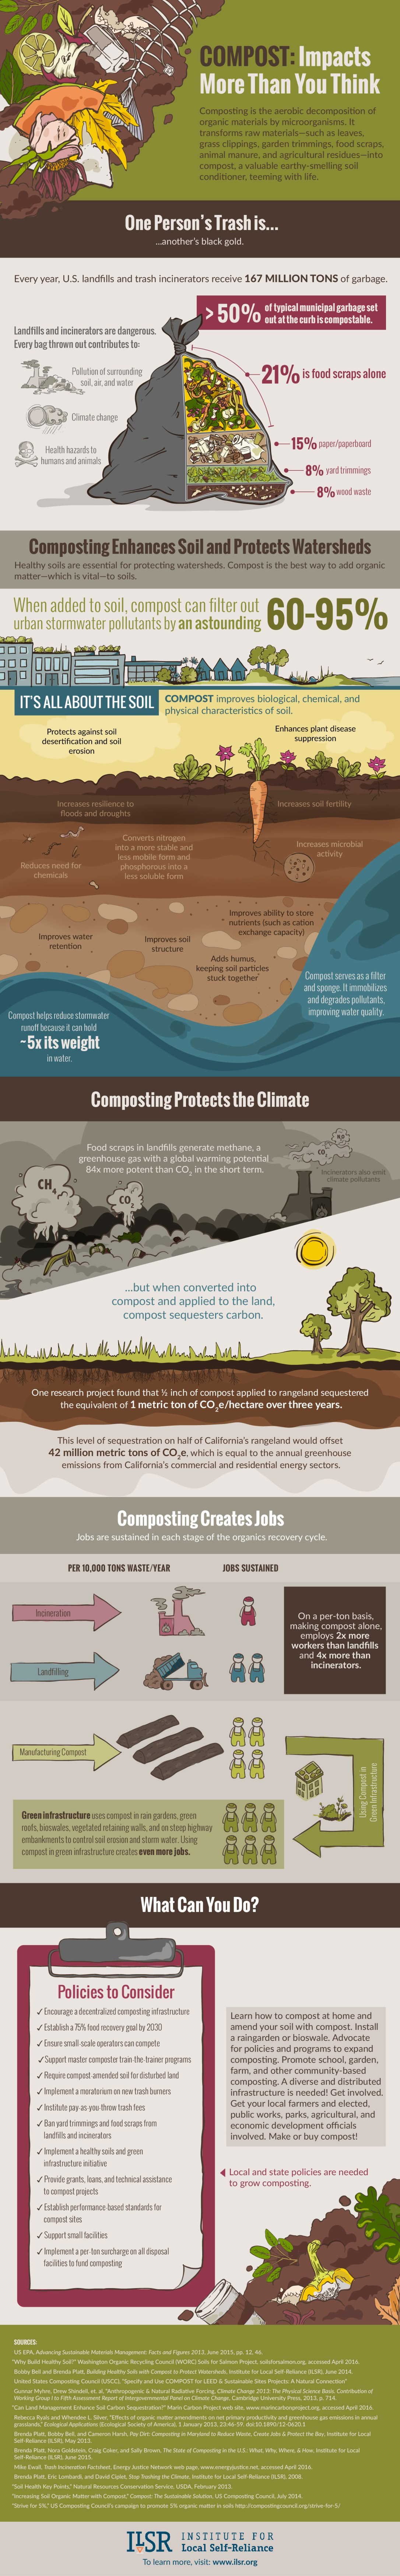 ILSR-COMPOST-infographic_Full.jpg